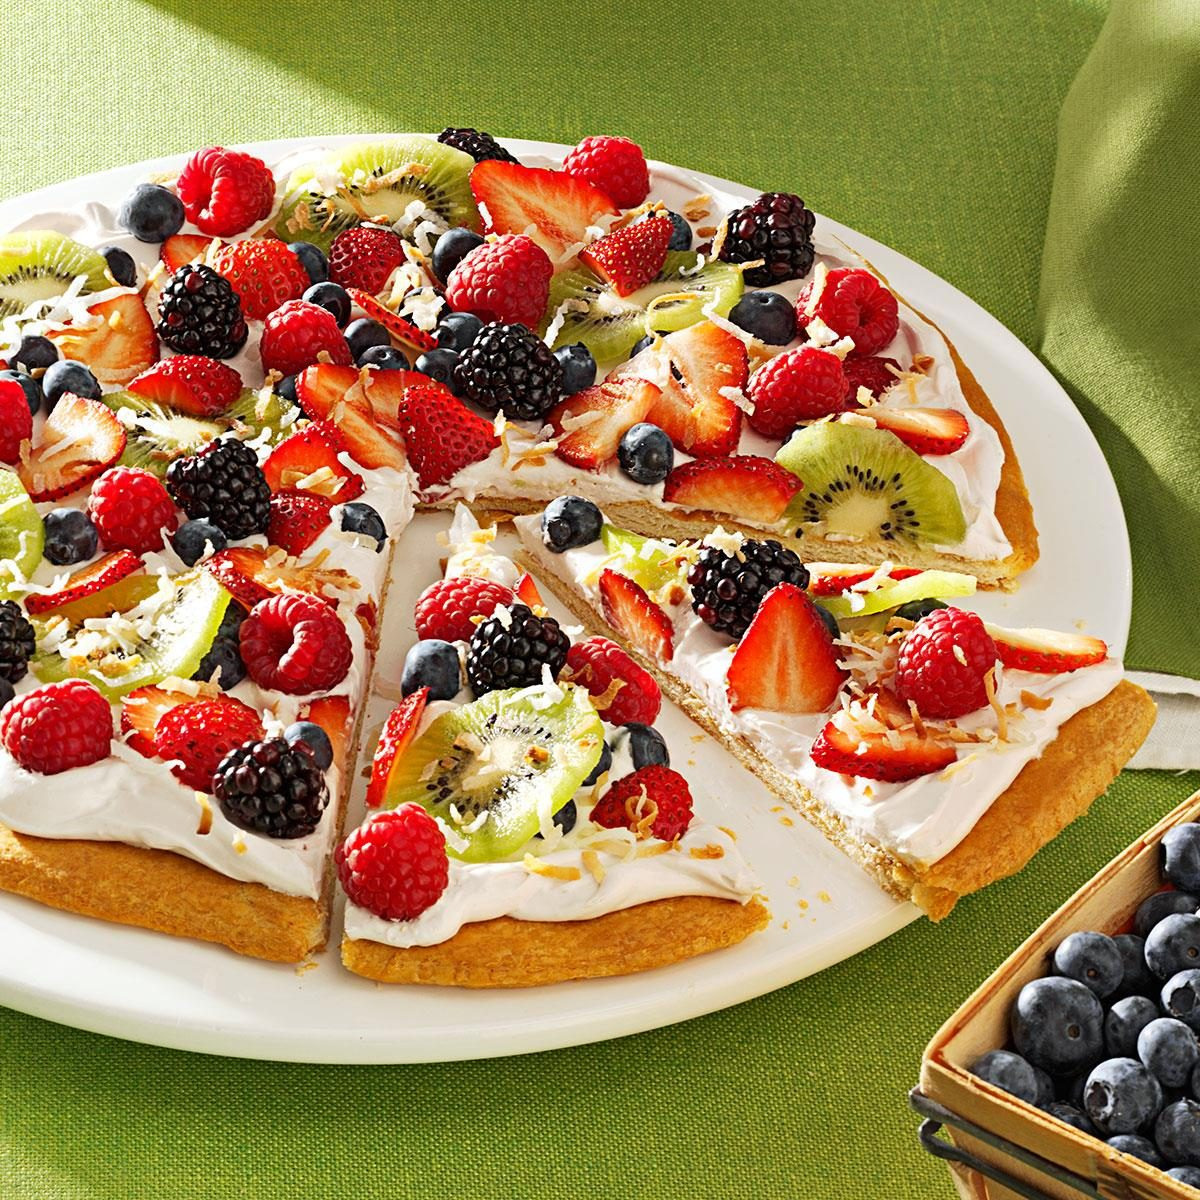 40 Easy Potluck Recipes For Your Graduation Party: Berries 'n' Cream Pizza Recipe